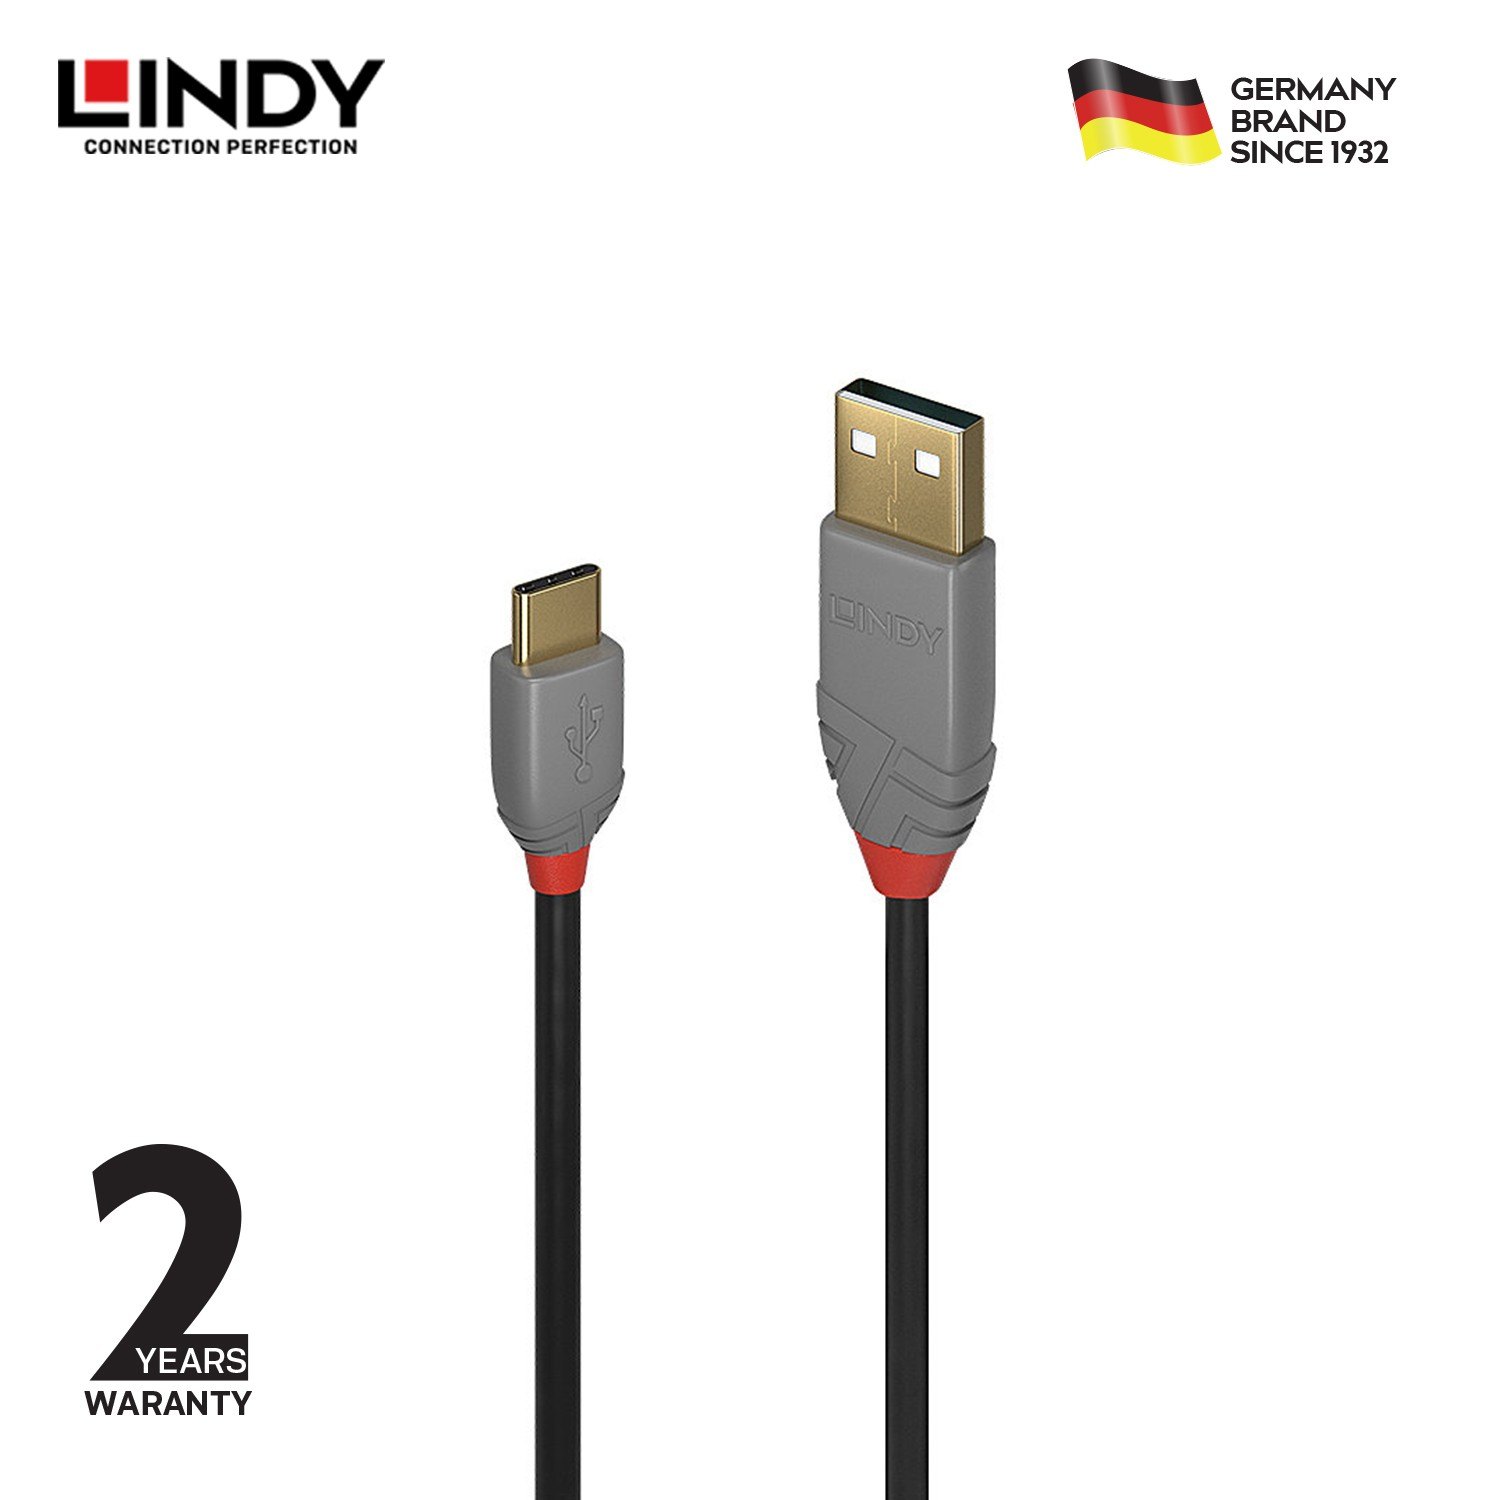 Anthra USB 2.0 Type C to A Cable, 2m